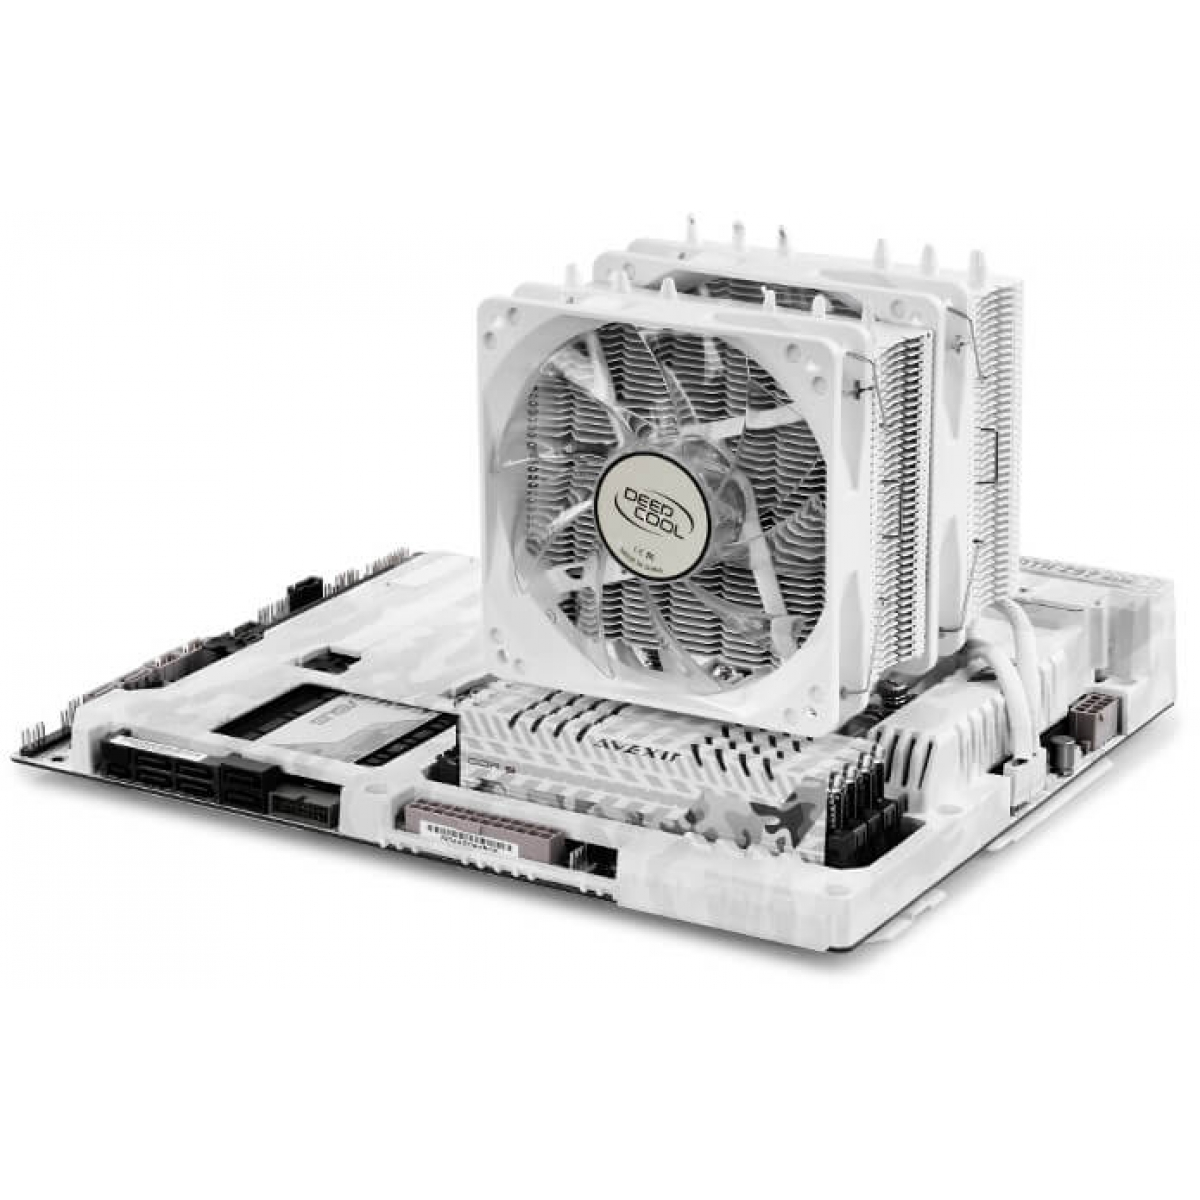 Cooler para Processador DeepCool Neptwin, White 120mm, Intel-AMD, DP-MCH6-NT-WH